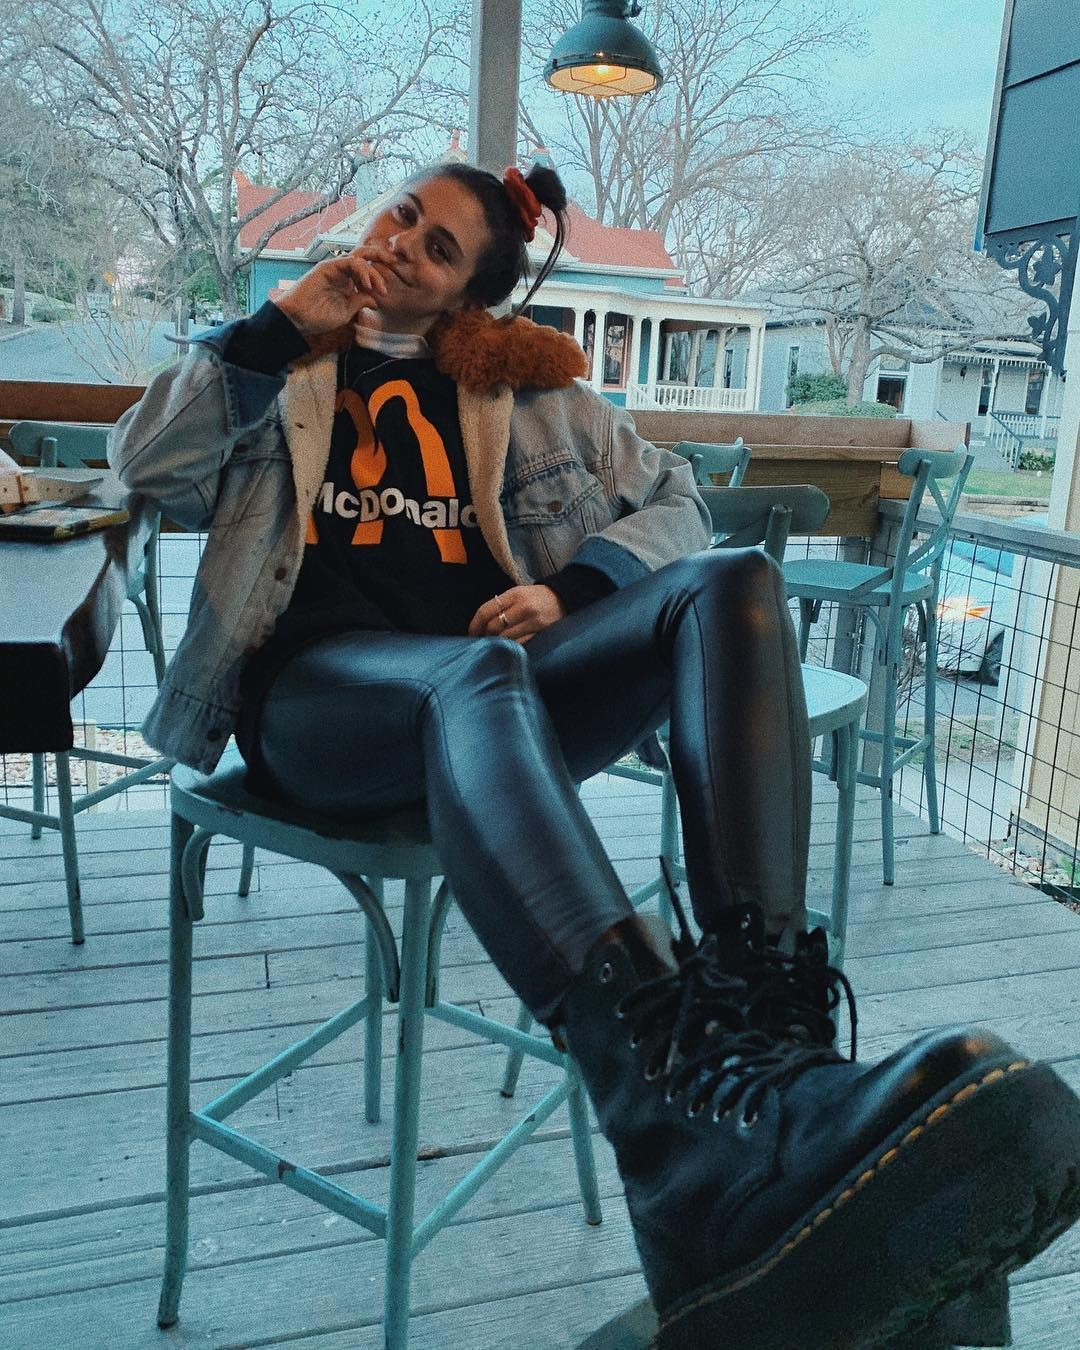 Kelsey Kreppel On Instagram Reppin My Team Fashion Outfits Outfit Inspo See what kelsey kreppel (kelseykreppel) has discovered on pinterest, the world's biggest collection of ideas. kelsey kreppel on instagram reppin my